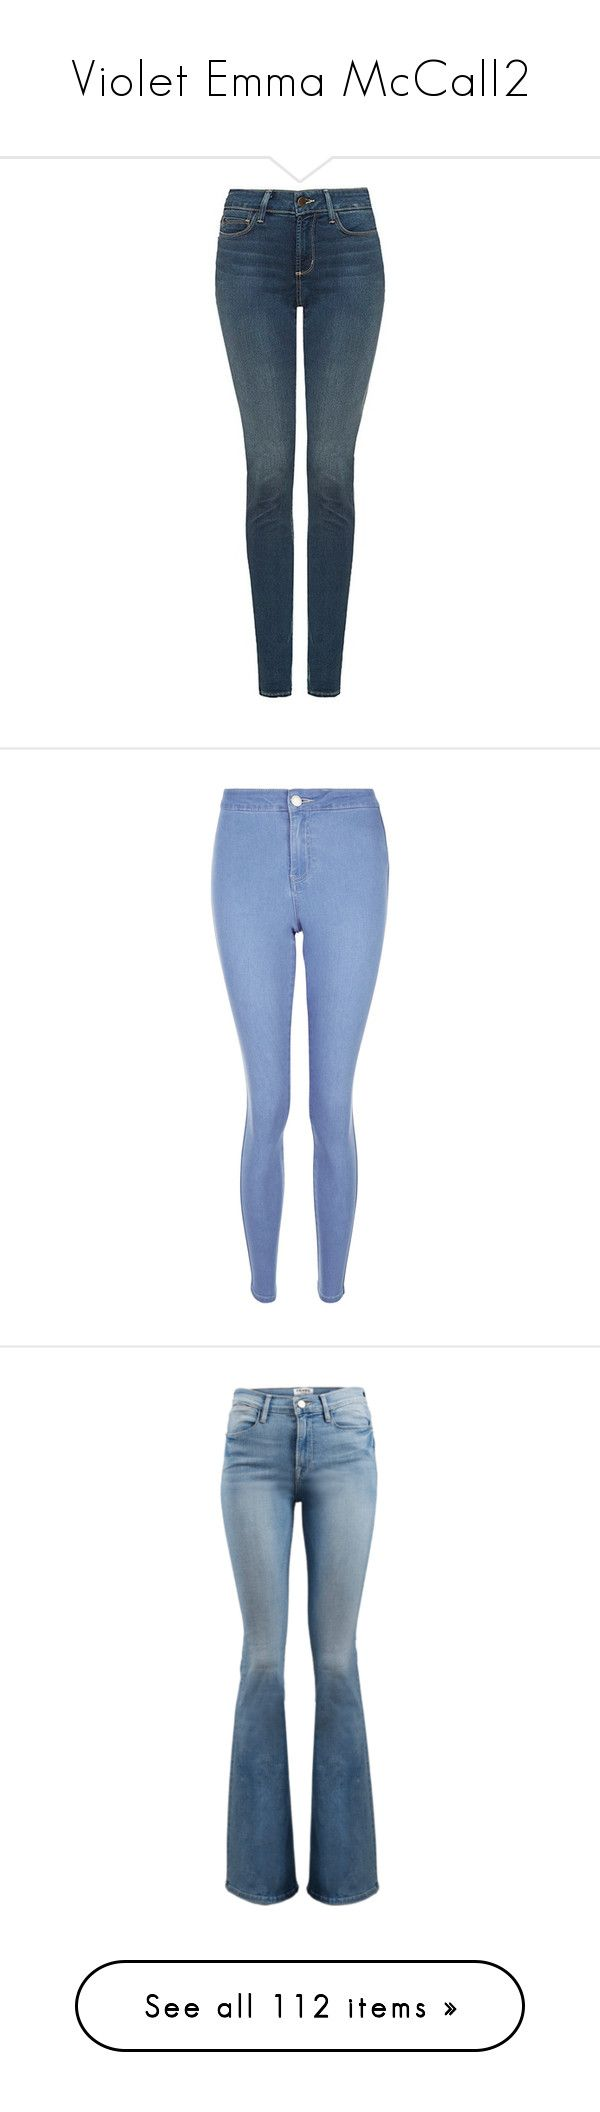 """""""Violet Emma McCall2"""" by cheyleexox ❤ liked on Polyvore featuring jeans, pants, bottoms, calças, pantalones, super stretch jeans, patterned jeans, slim fit jeans, stretch jeans and nydj jeans"""